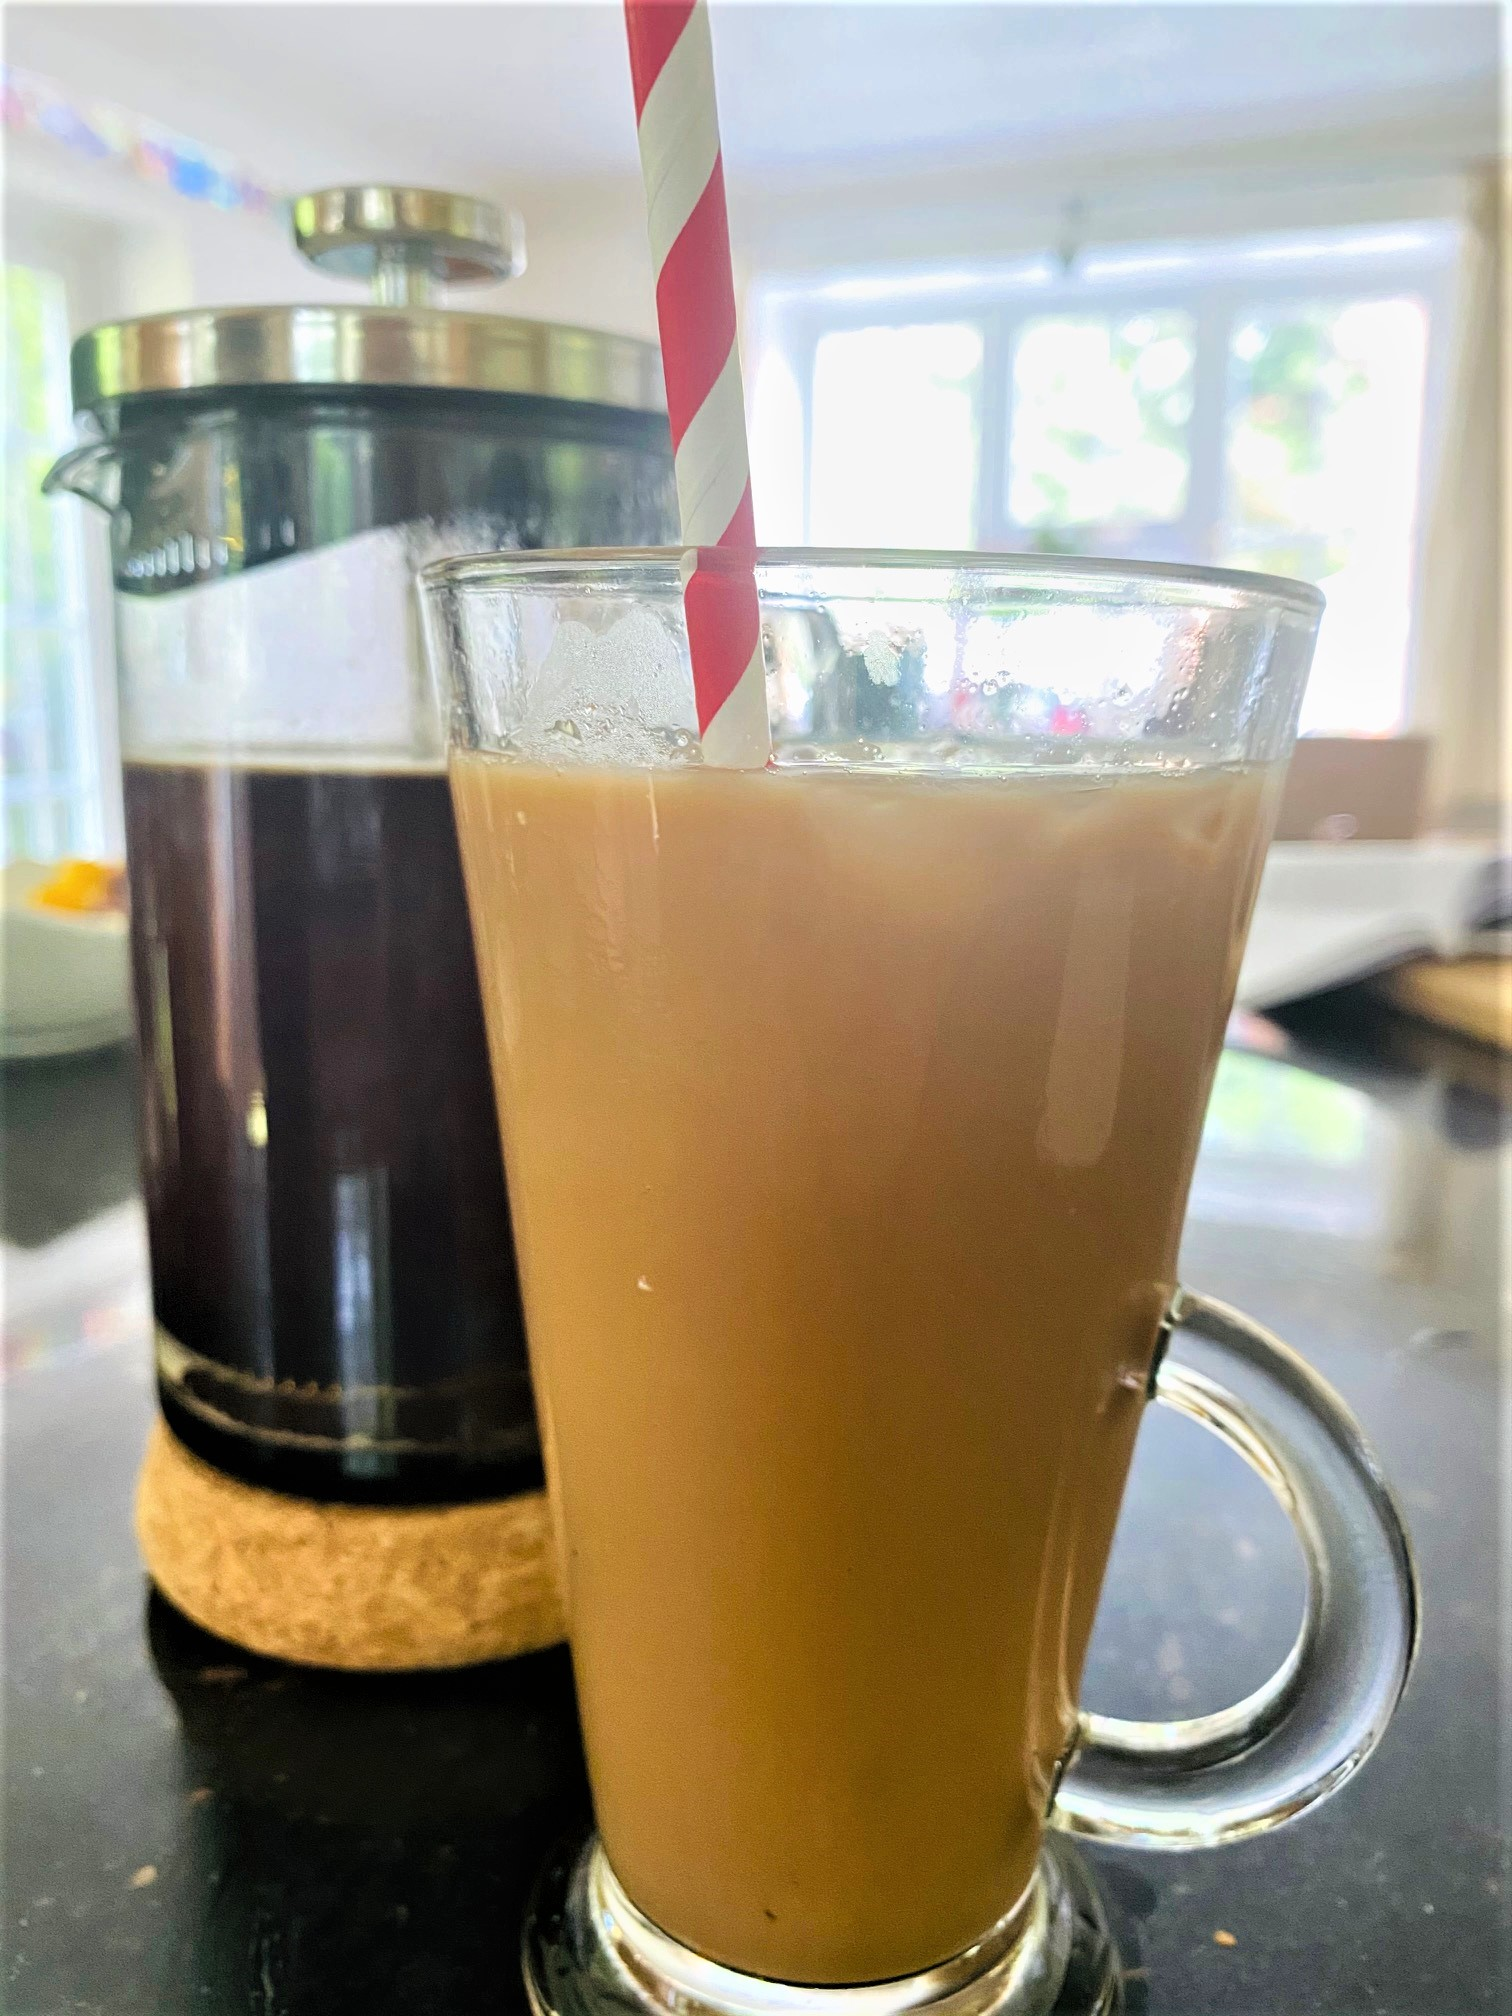 cafetiere and iced coffee